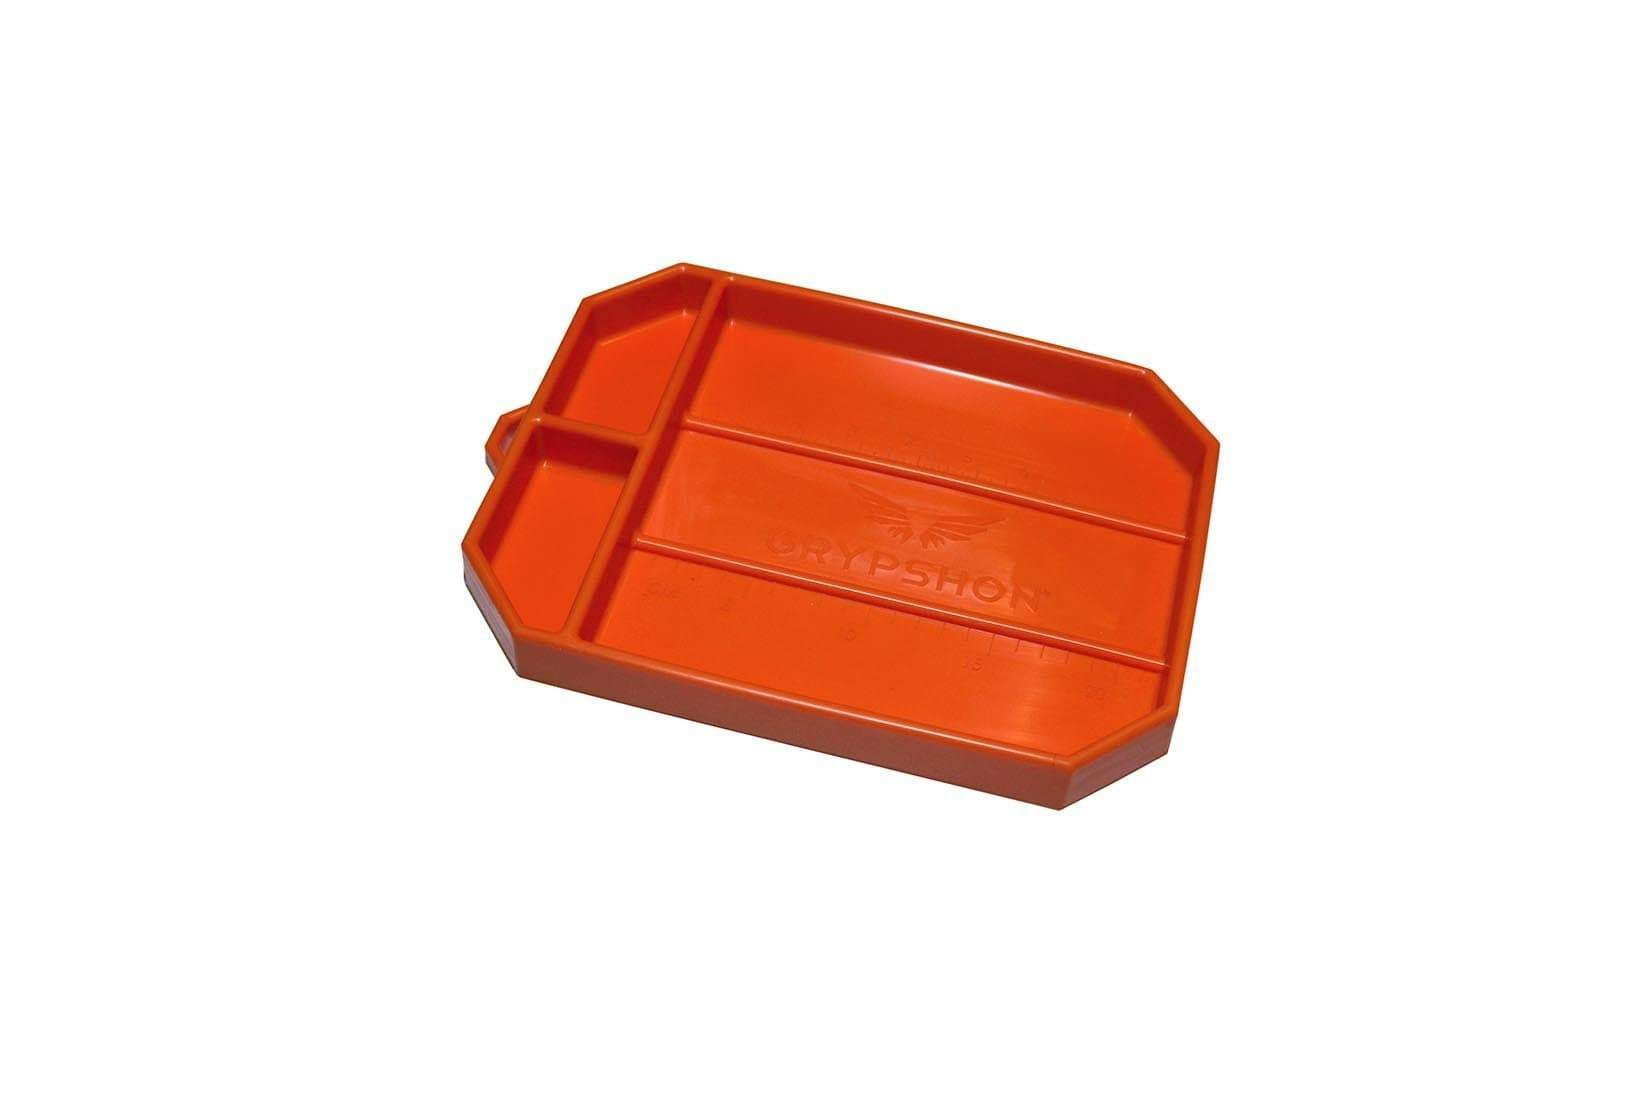 Grypmat RFGM-CR02S Tool Tray, Grypmat, 8 x 12 in, Rectangular, 1 in Thick, Chemical Resistant, Silicone, Orange, Each